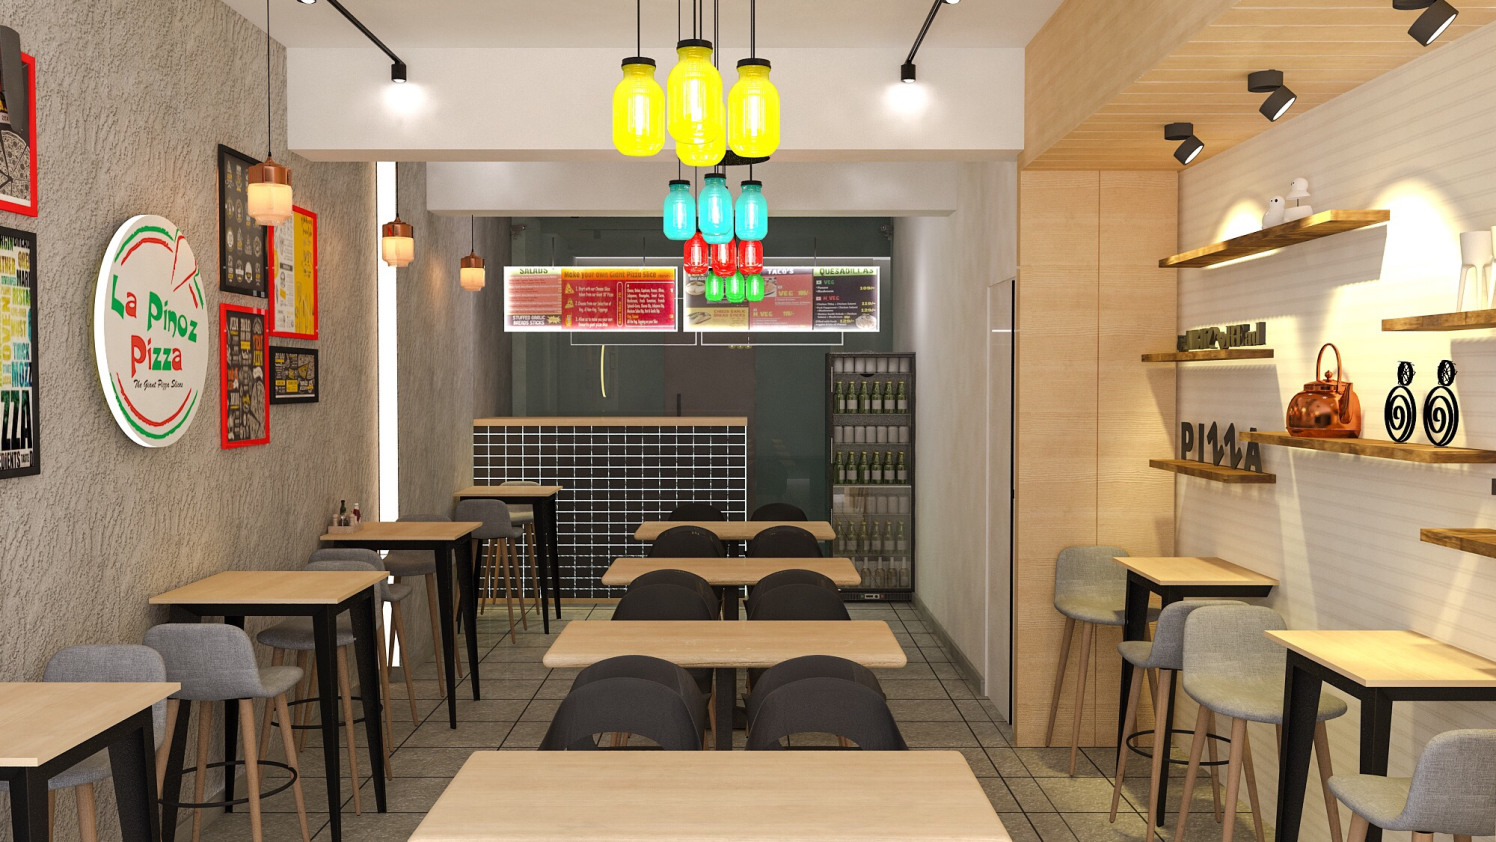 Cafeteria by setu.patel | Interior Design Photos & Ideas